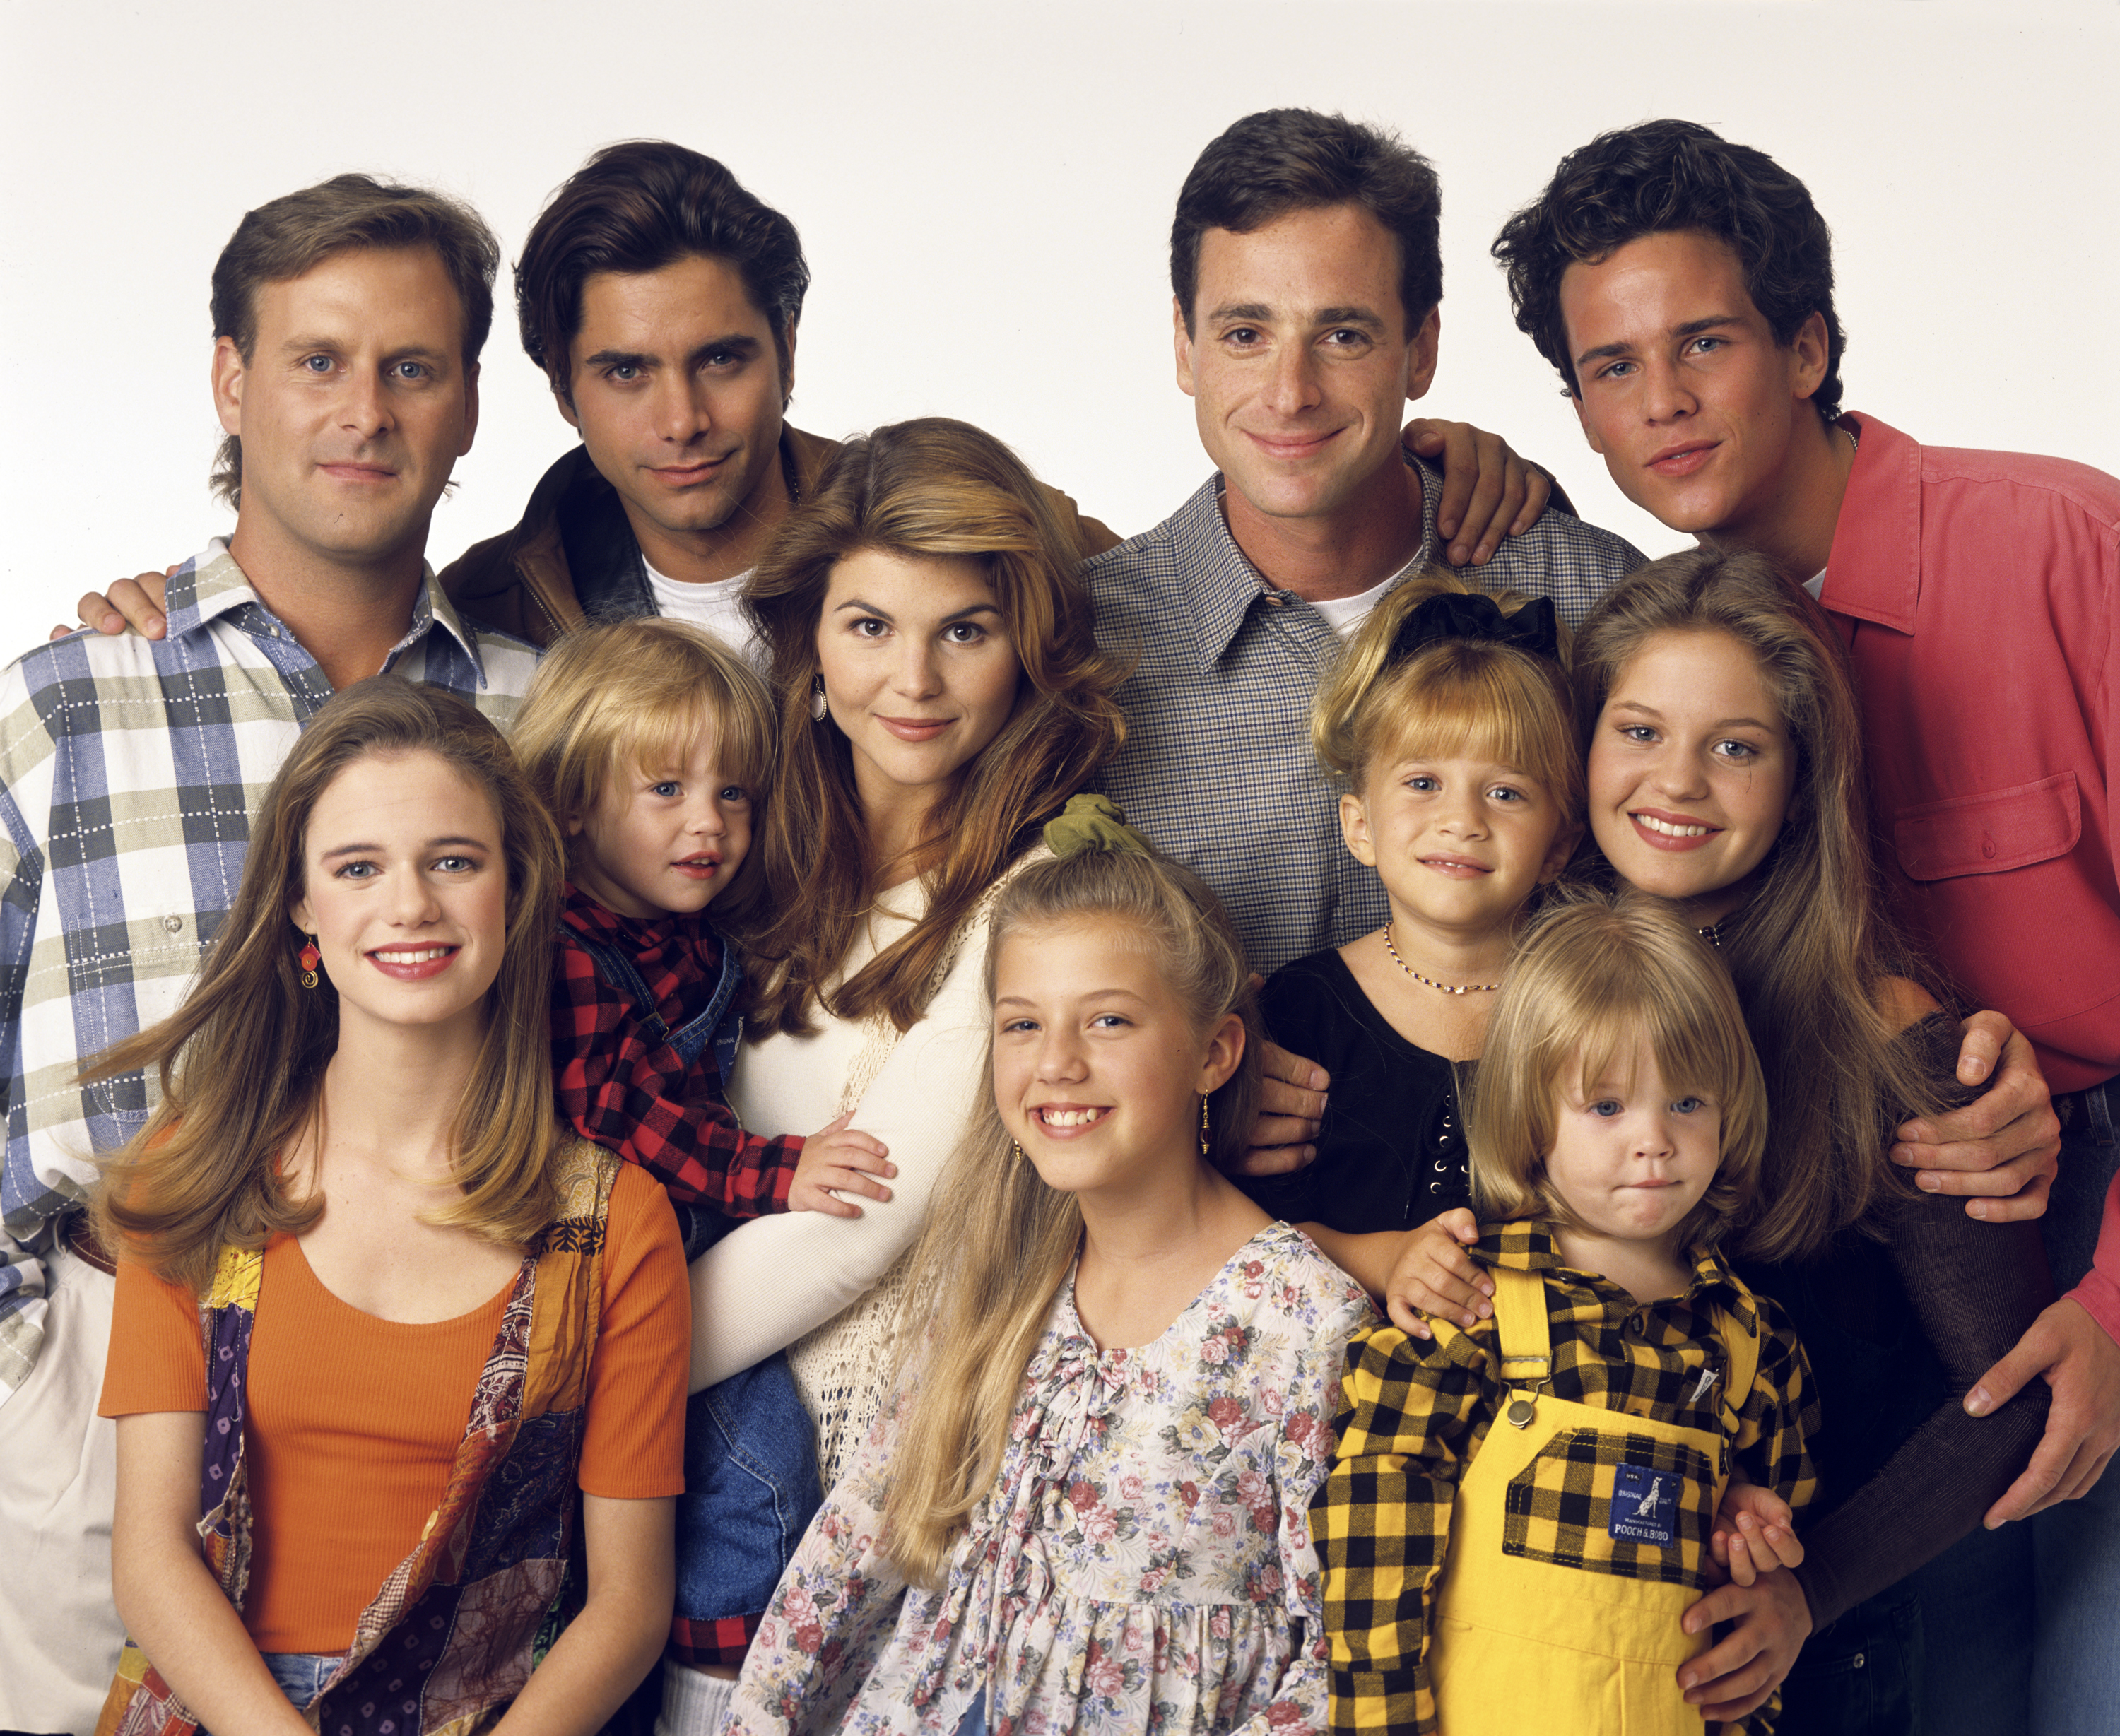 'Full House' cast recreates opening as 'Full Quarantine'